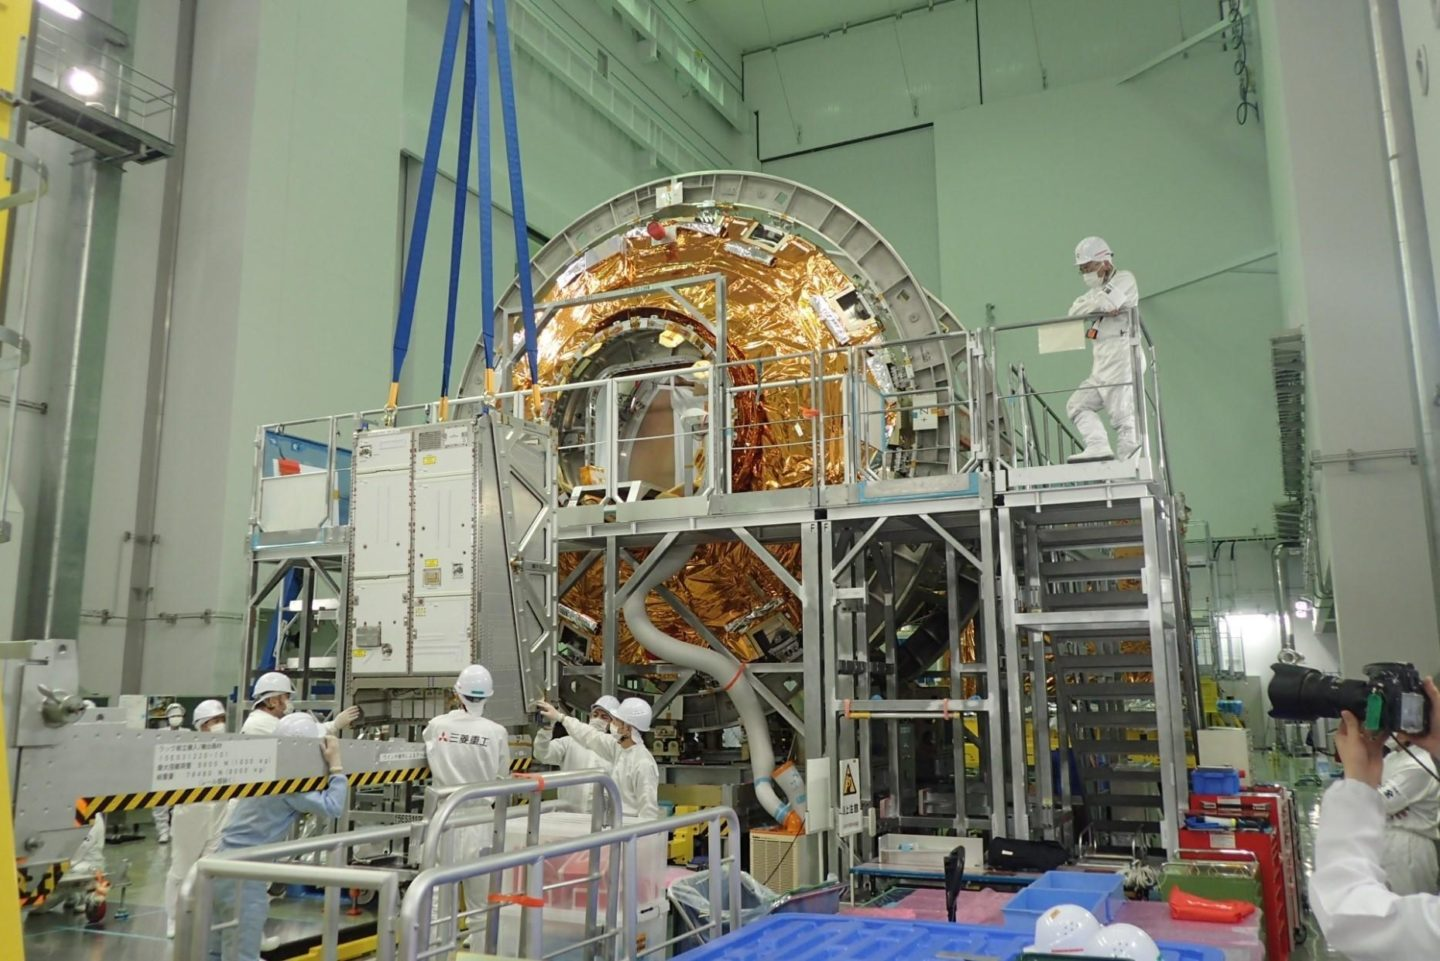 ACLS in final preparation for launch